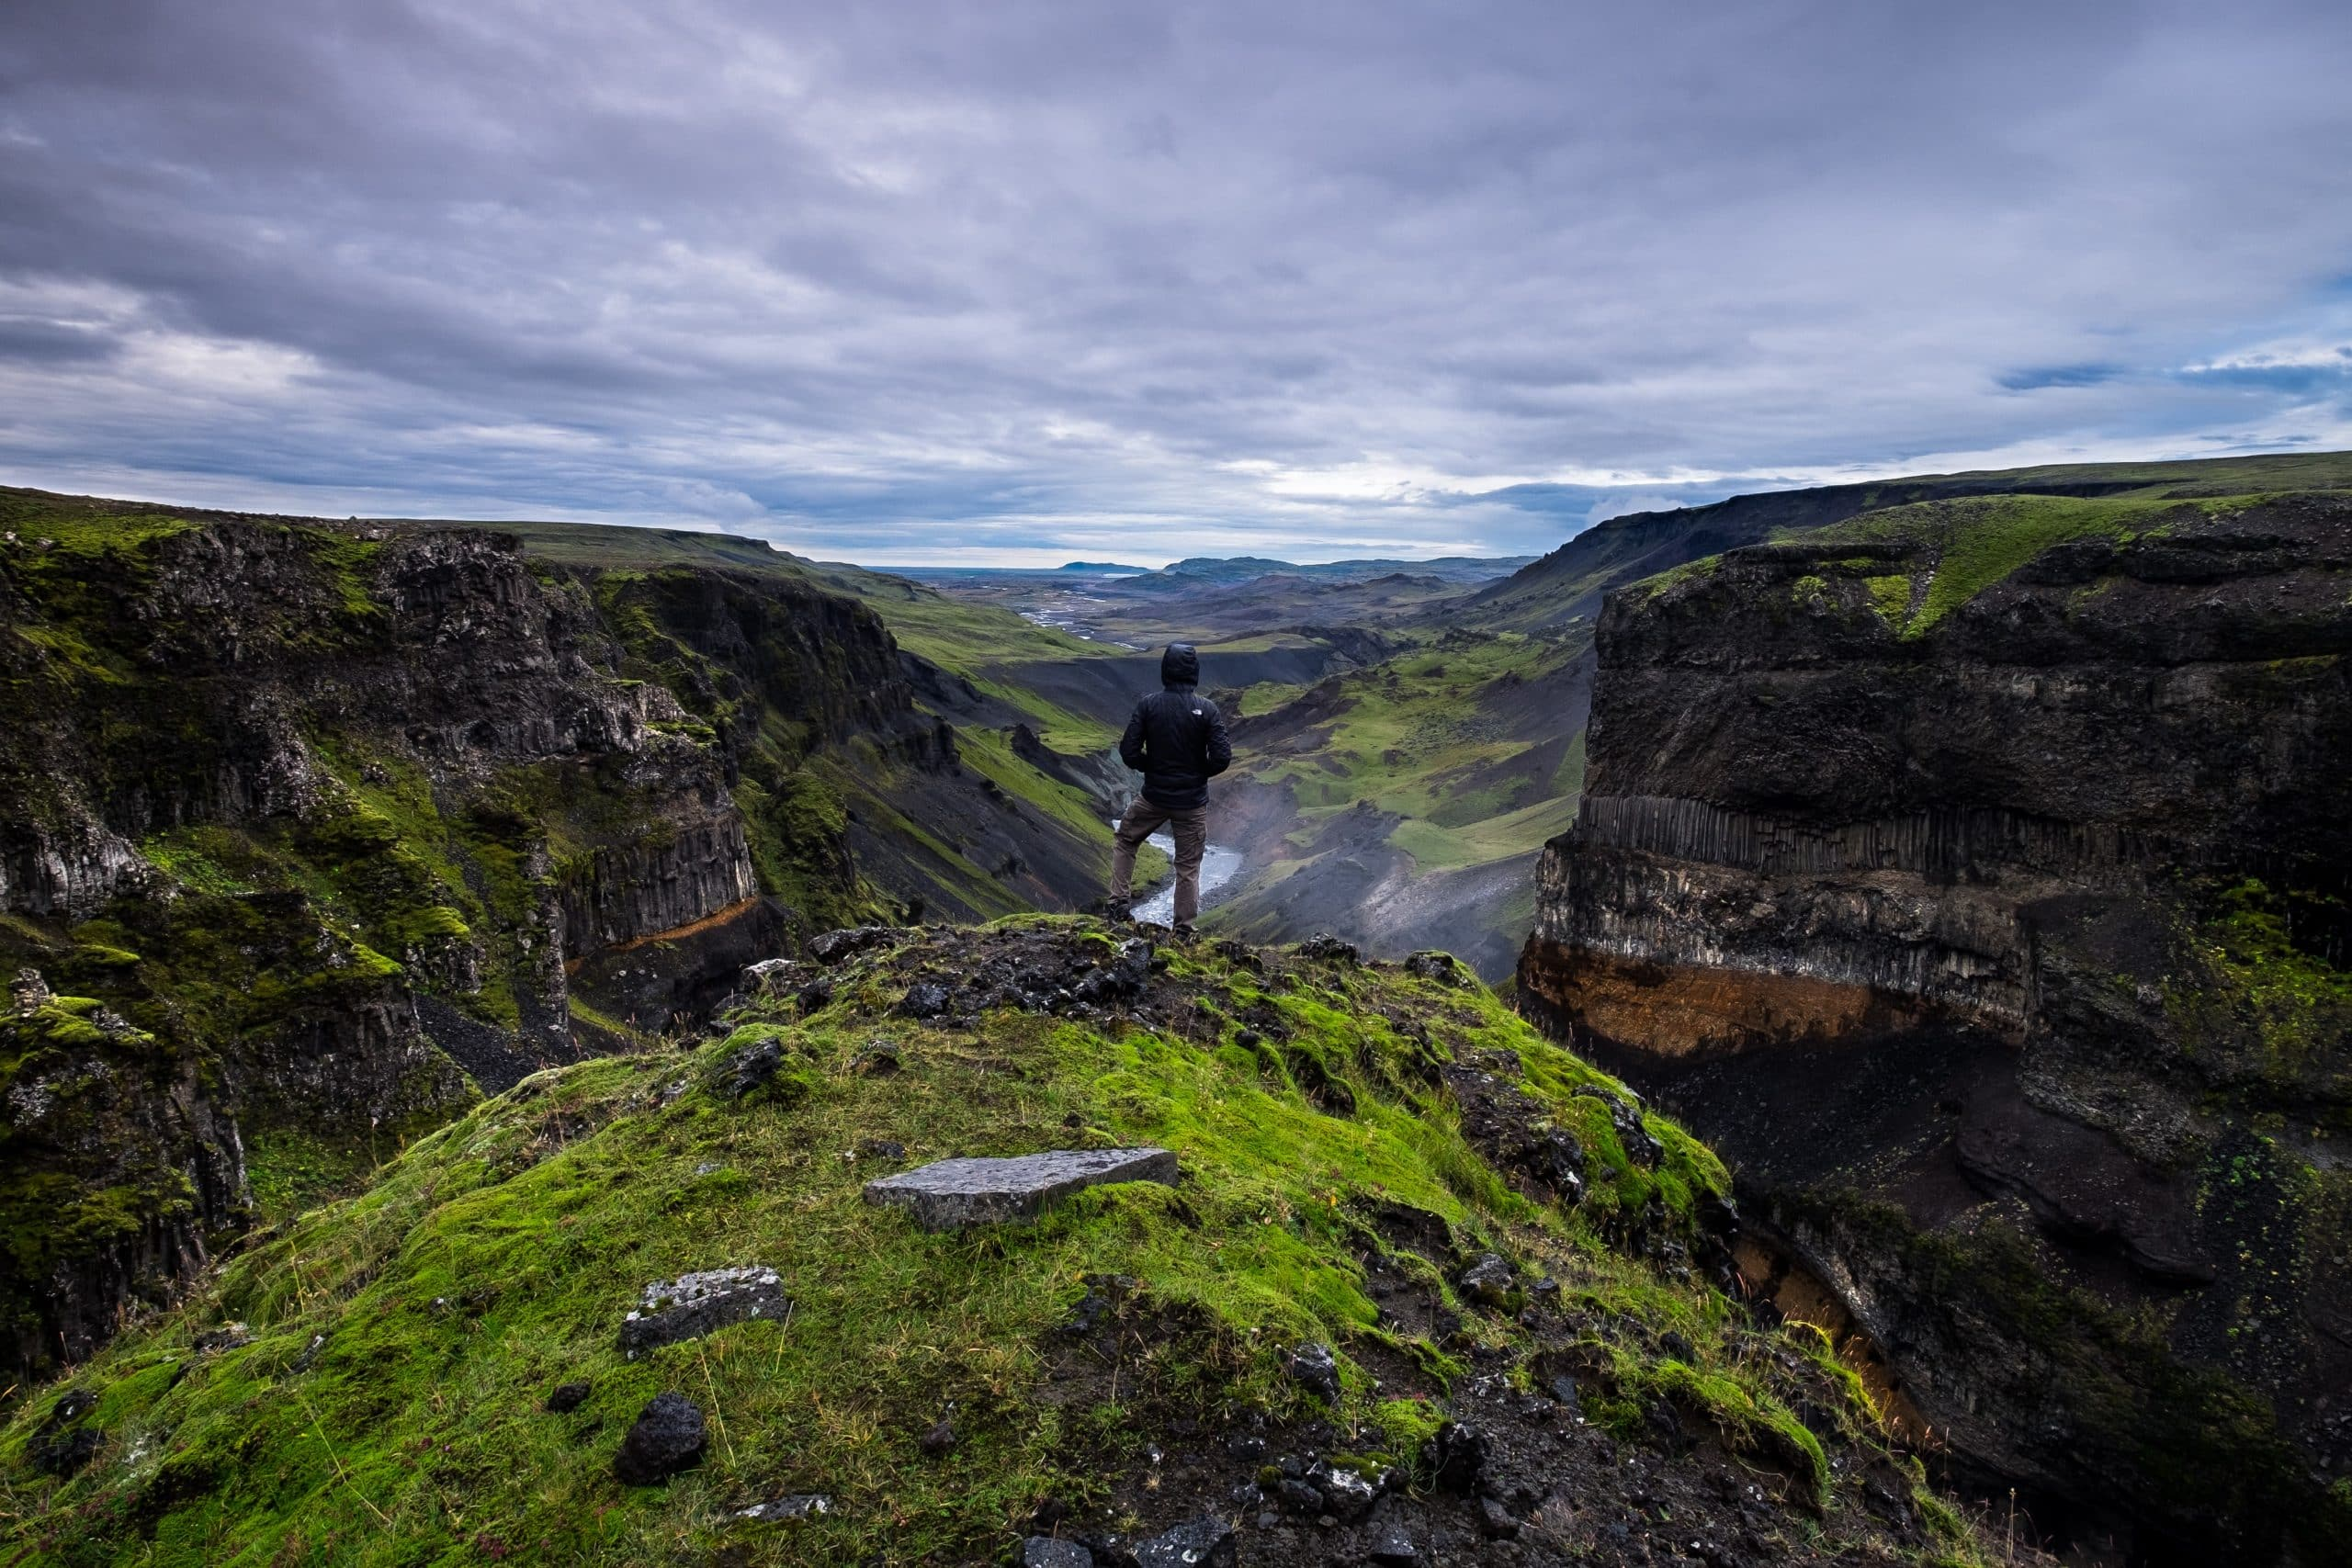 A person standing on a cliff overlooking a canyon in South Iceland.